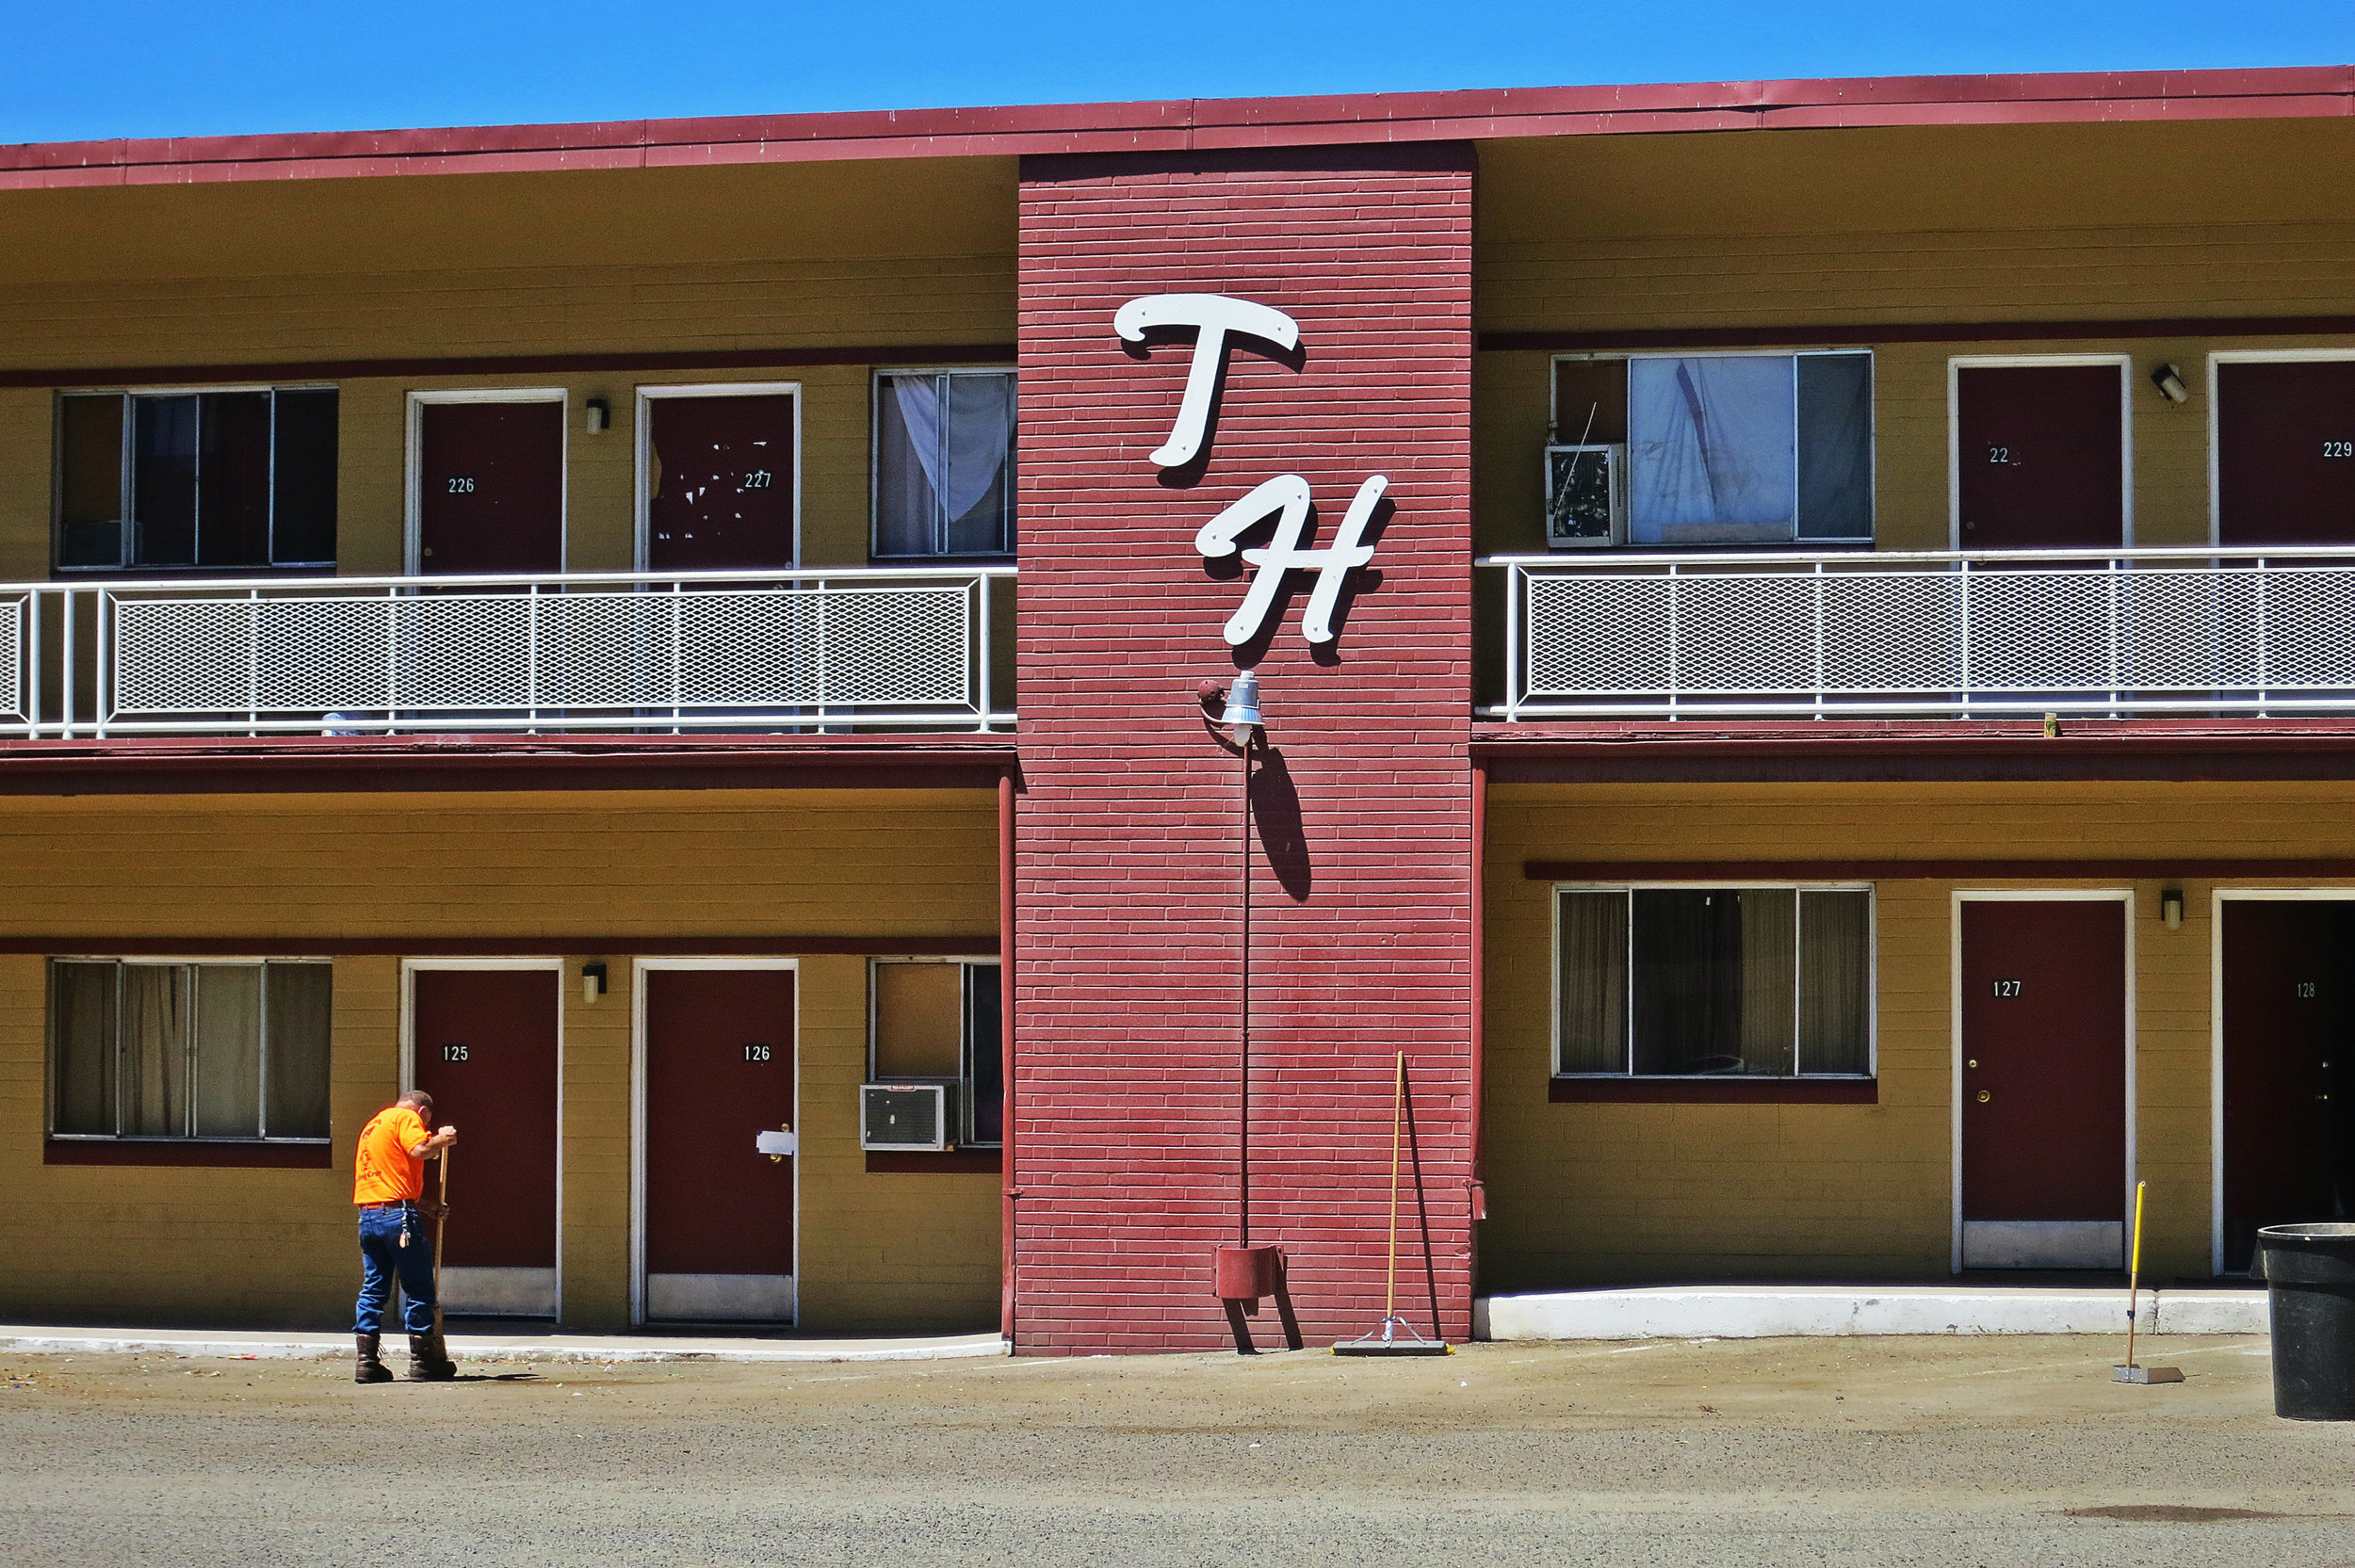 Cleaning day at the Motor Lodge. Photo taken in June 2016.